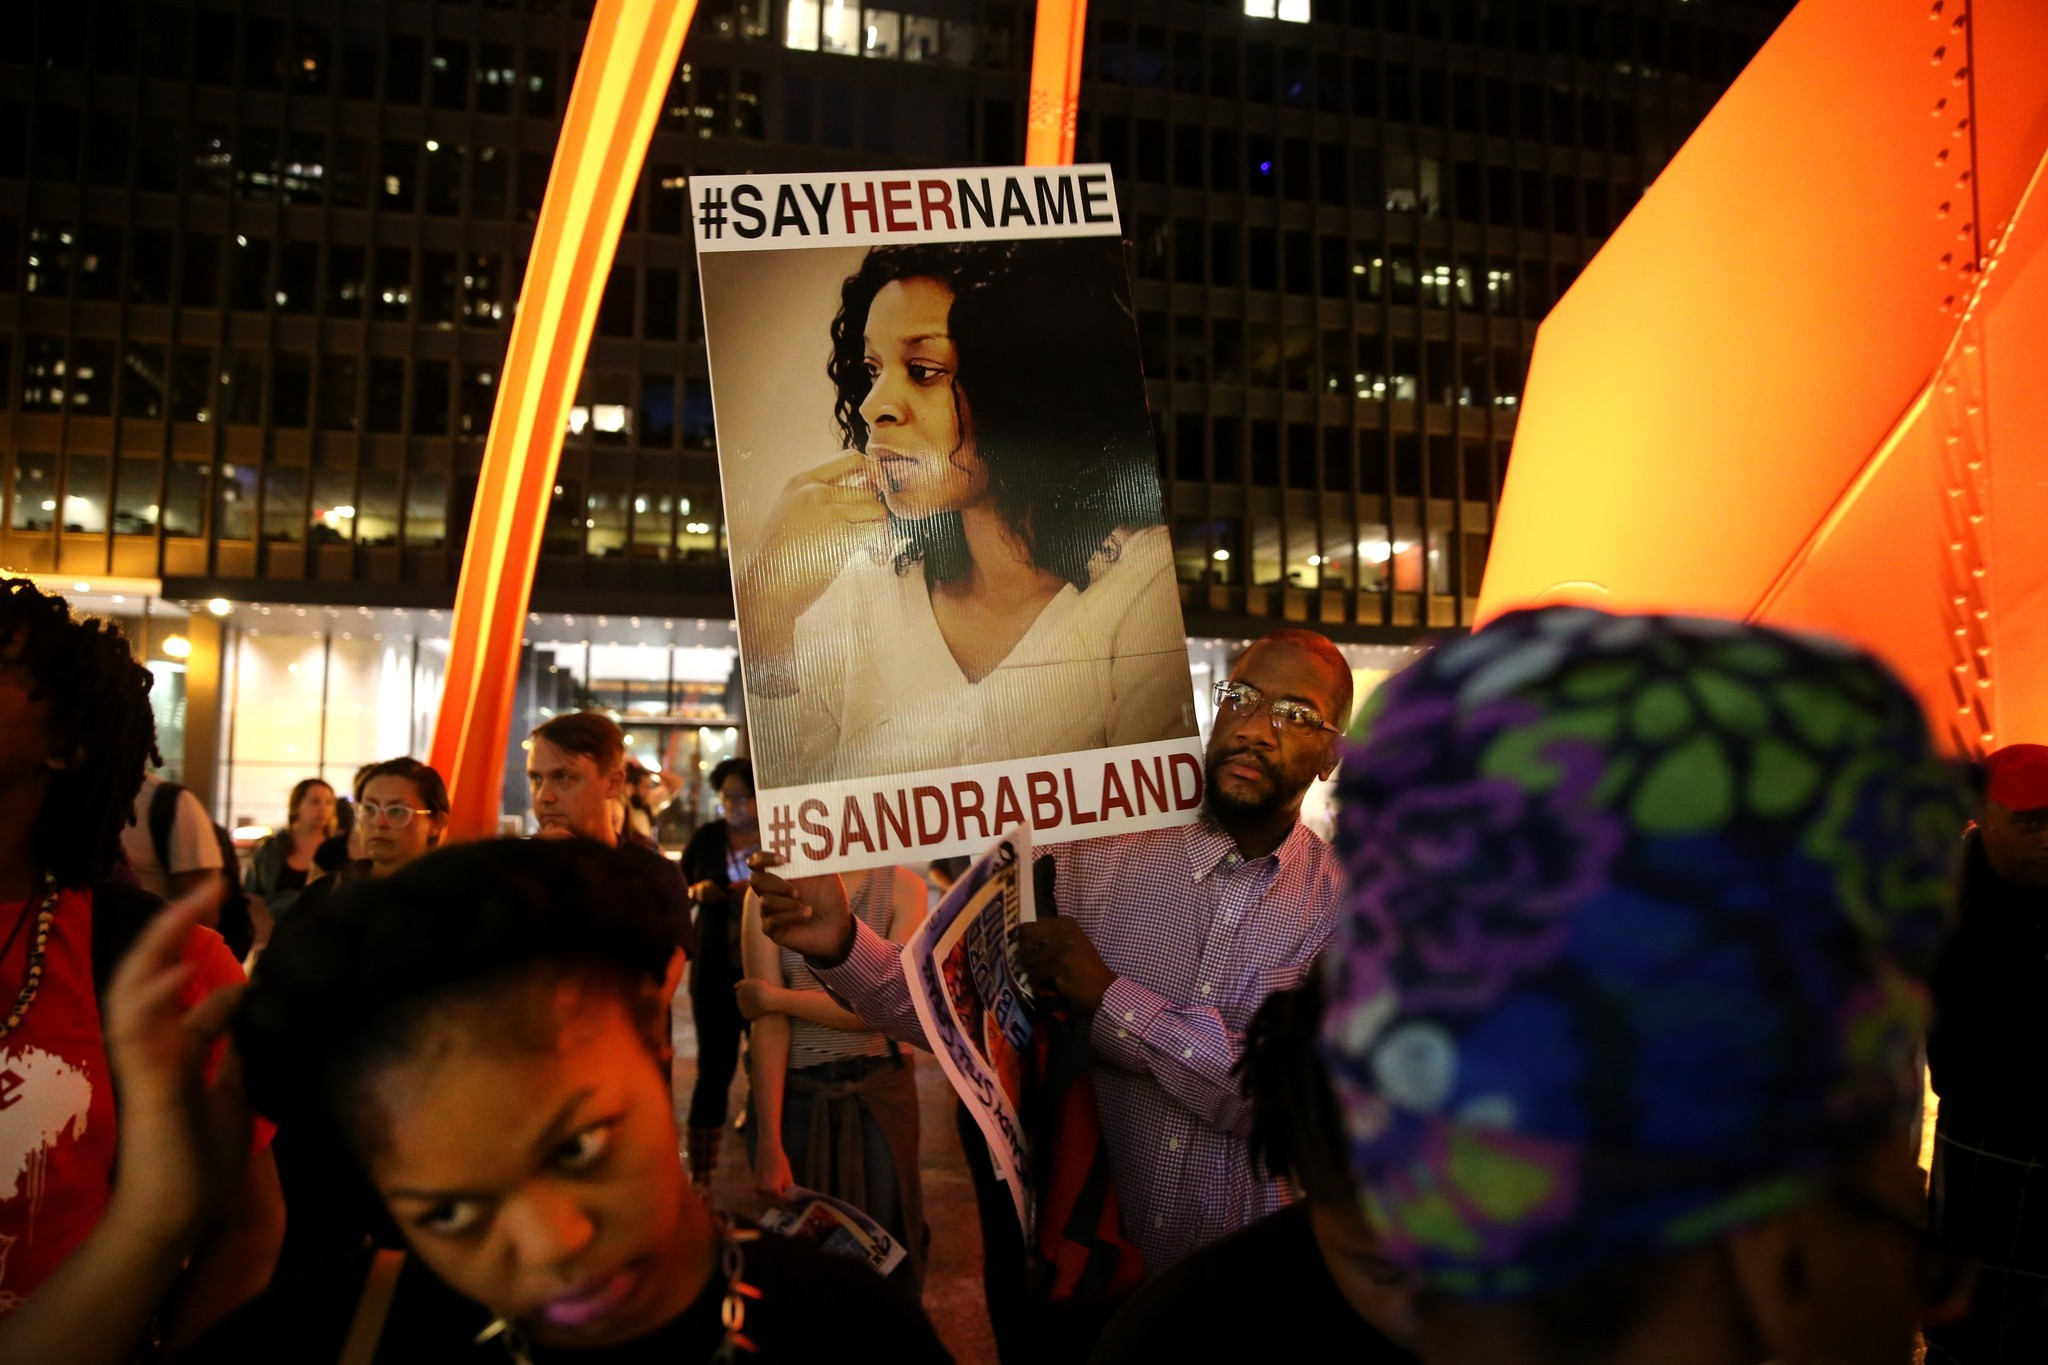 Tokunbo Adenekan of Baltimore holds a sign during a candlelight vigil in Chicago in July to mark the one-year anniversary of Sandra Bland's death.